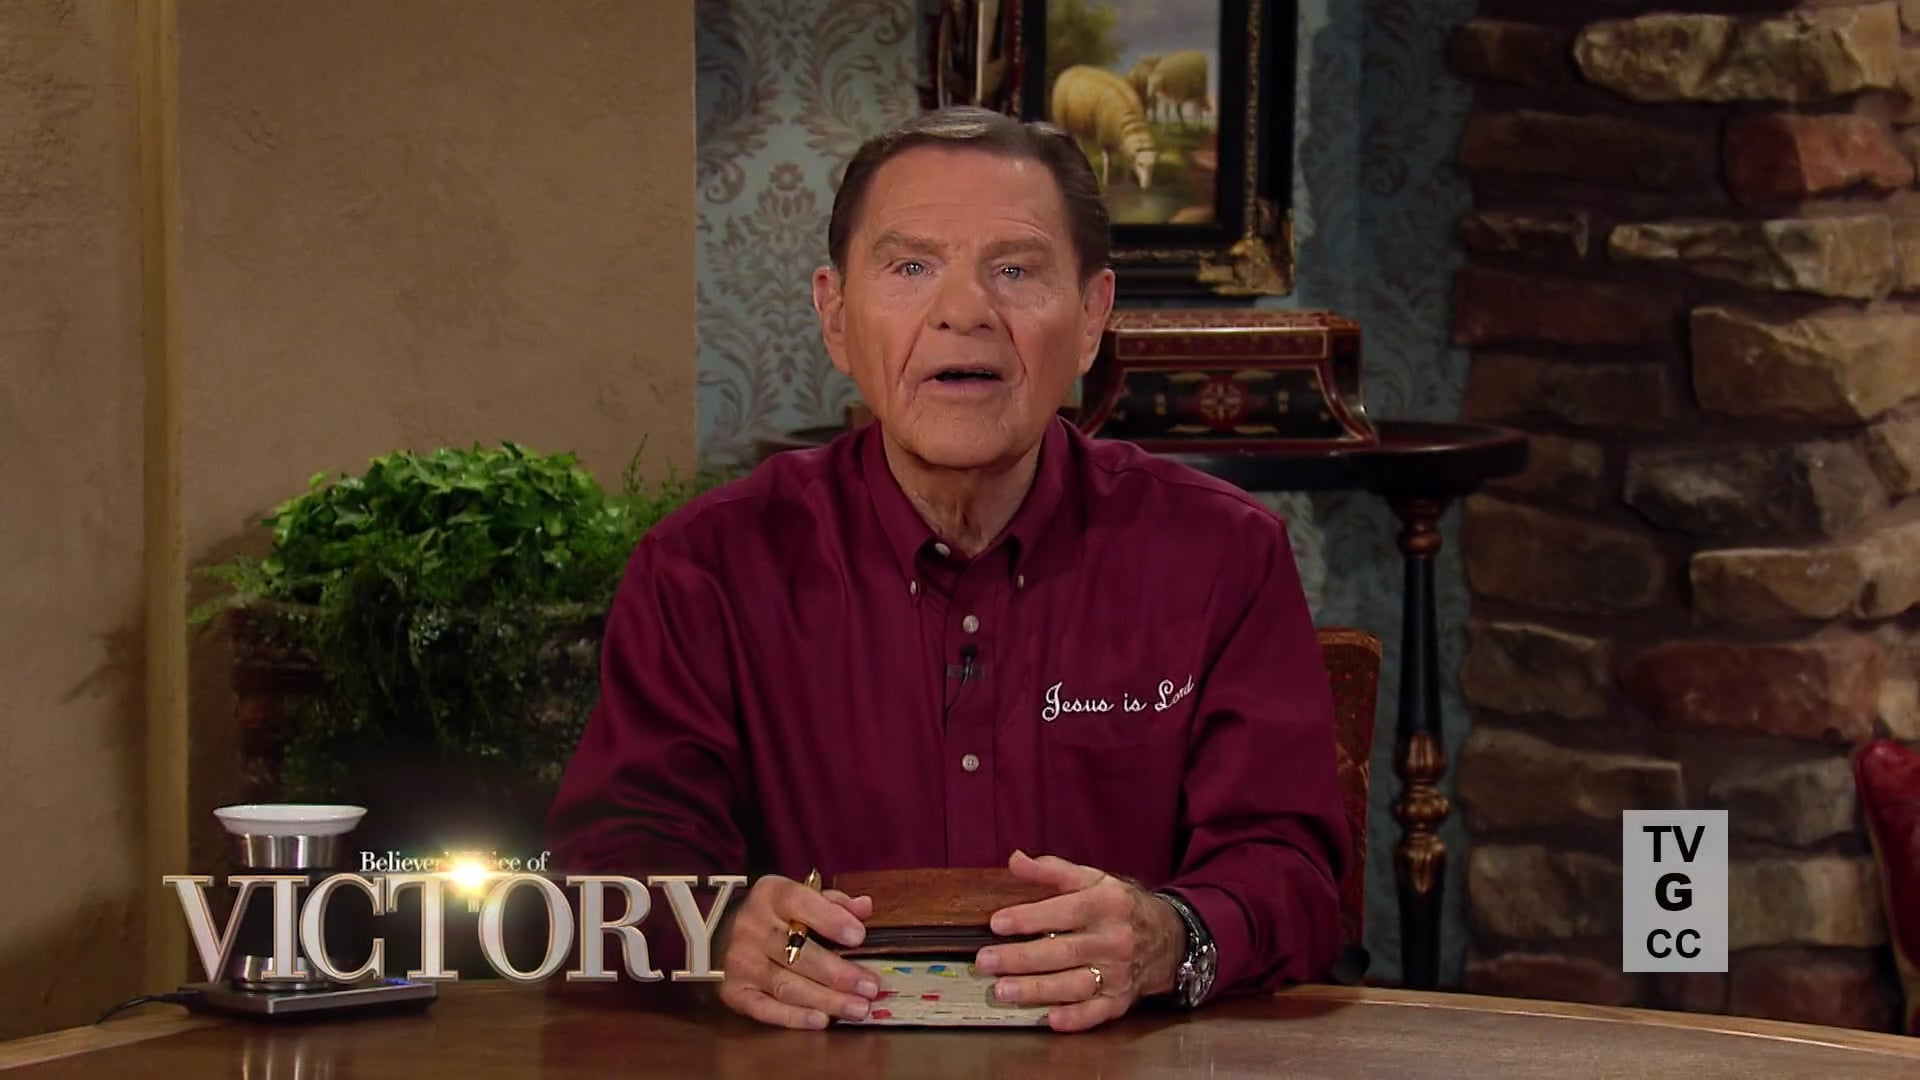 Ready for a breakthrough? It's only four steps away. Watch Kenneth Copeland on Believer's Voice of Victory as he walks you through the four steps of the basics of faith that always lead to victory. Faith says, does, believes and tells before the manifestation comes!